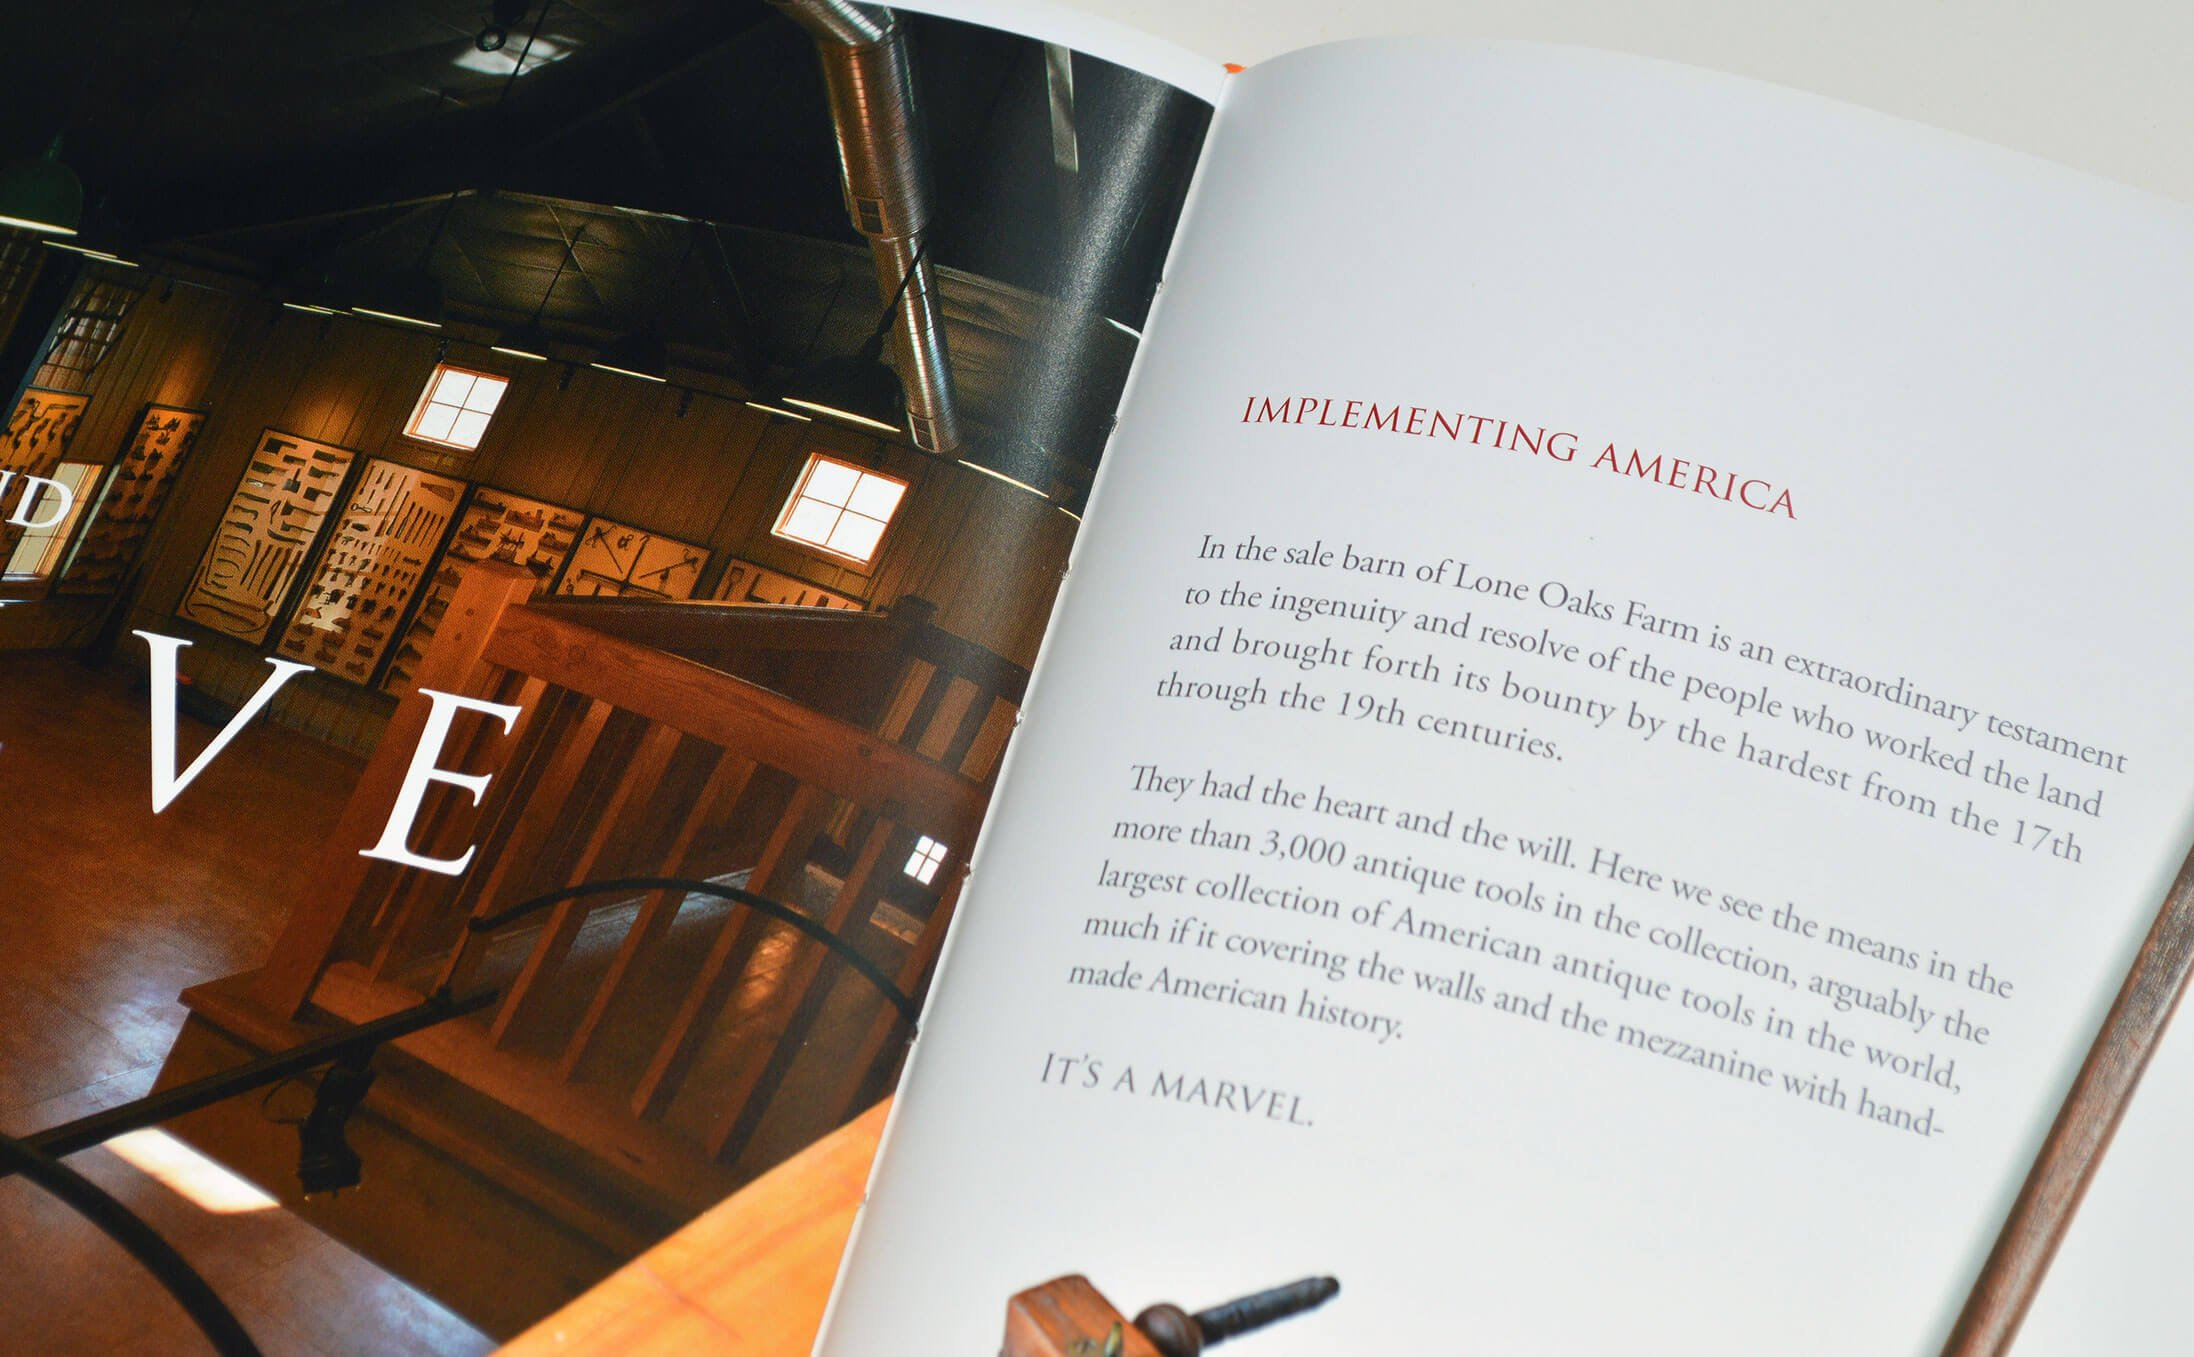 A Plural of e Hardcover Coffee Table Book Published